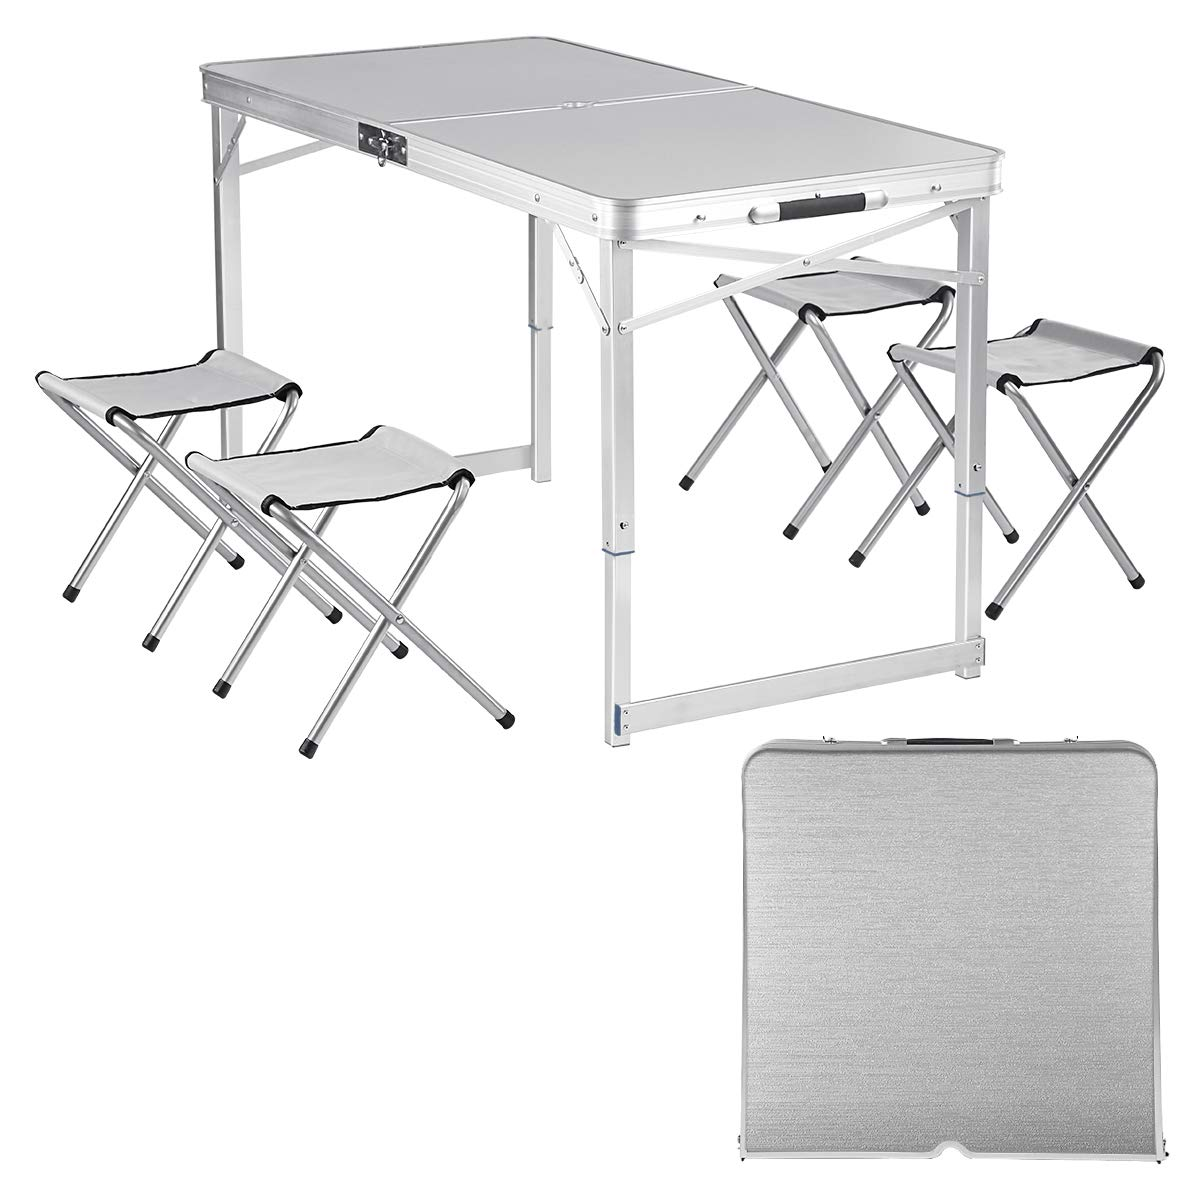 Adalantic 4-person Picnic Folding Table, Height Adjustable, Portable Aluminum Camping Table with 4 Chairs Indoor Outdoor Suitcase Table